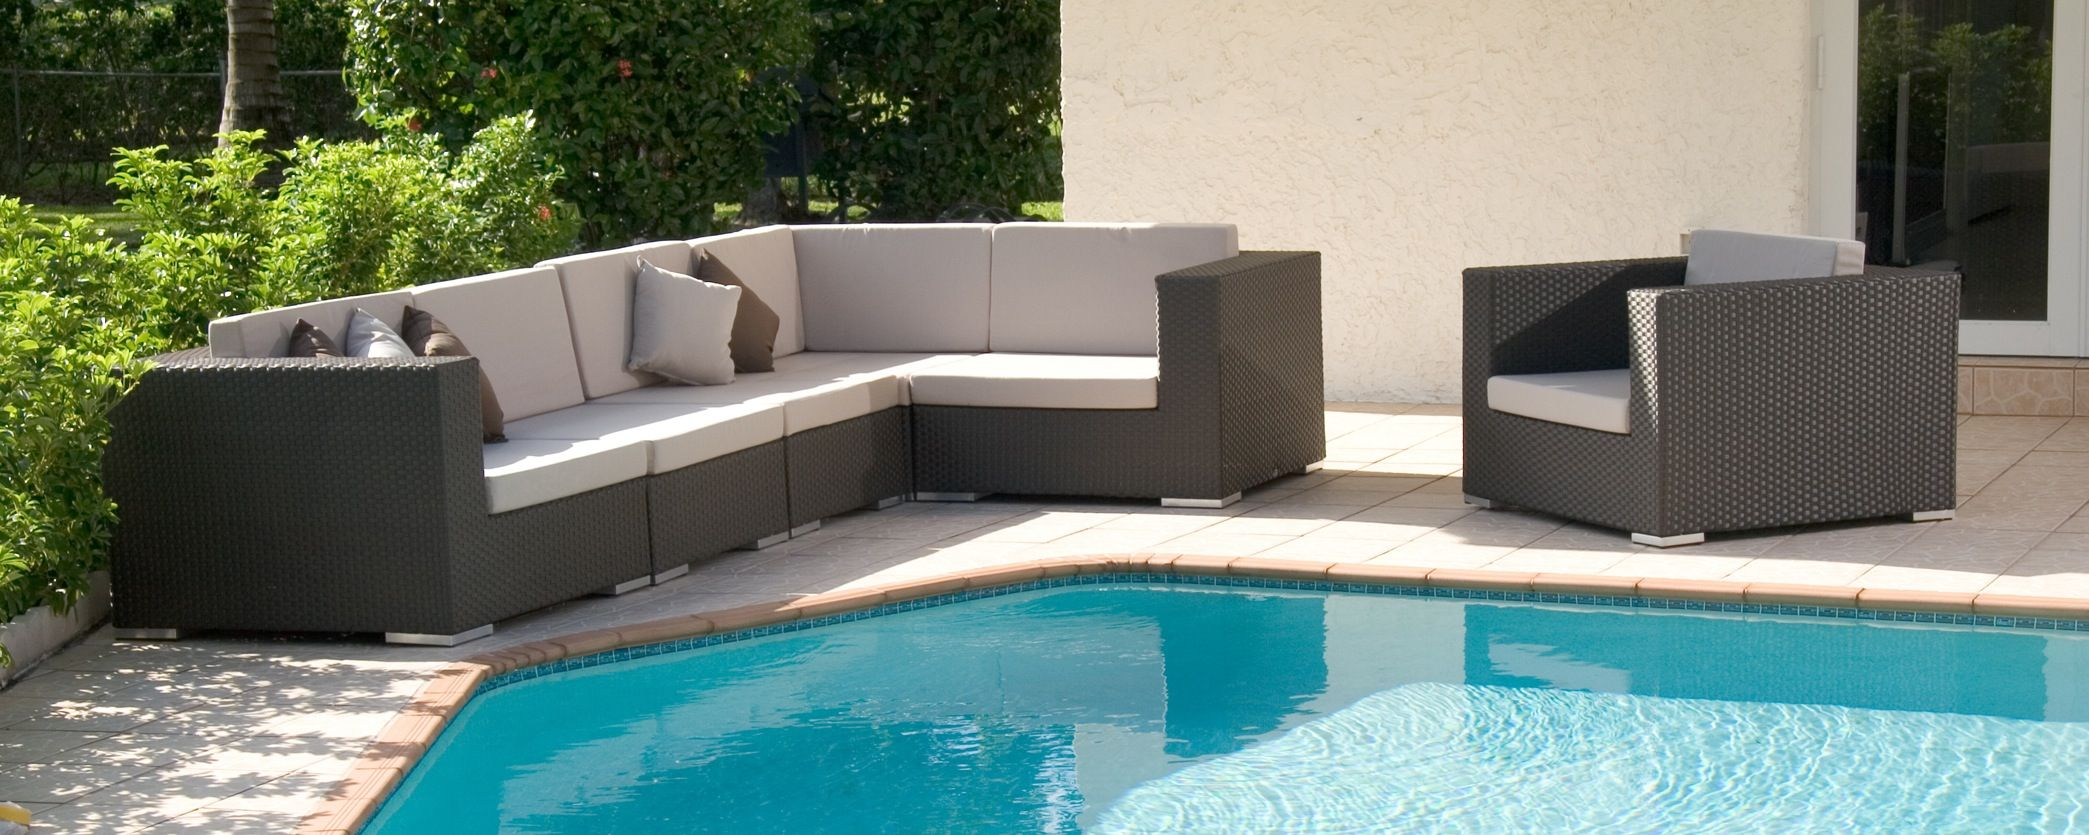 Outdoor Patio Furniture Designer Brands